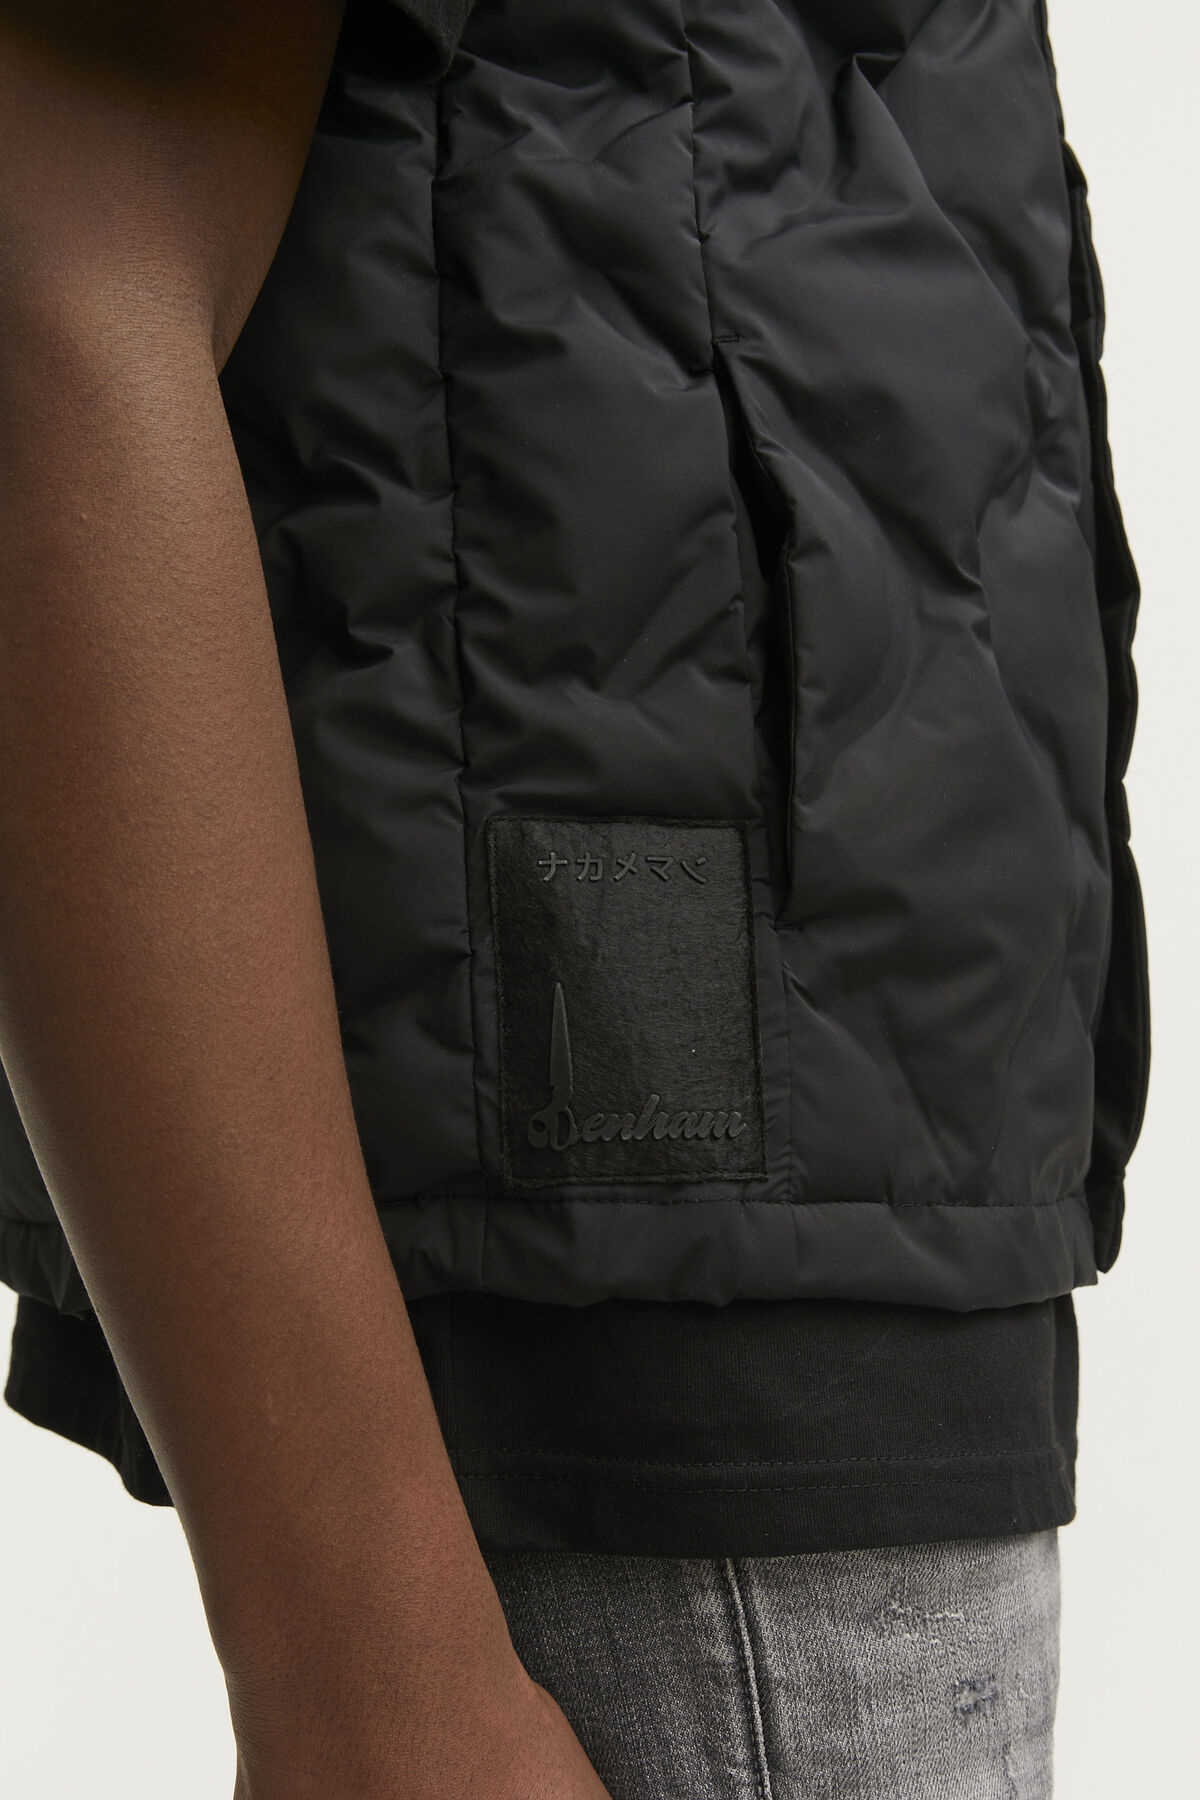 NM Vest High-Performance Nylon